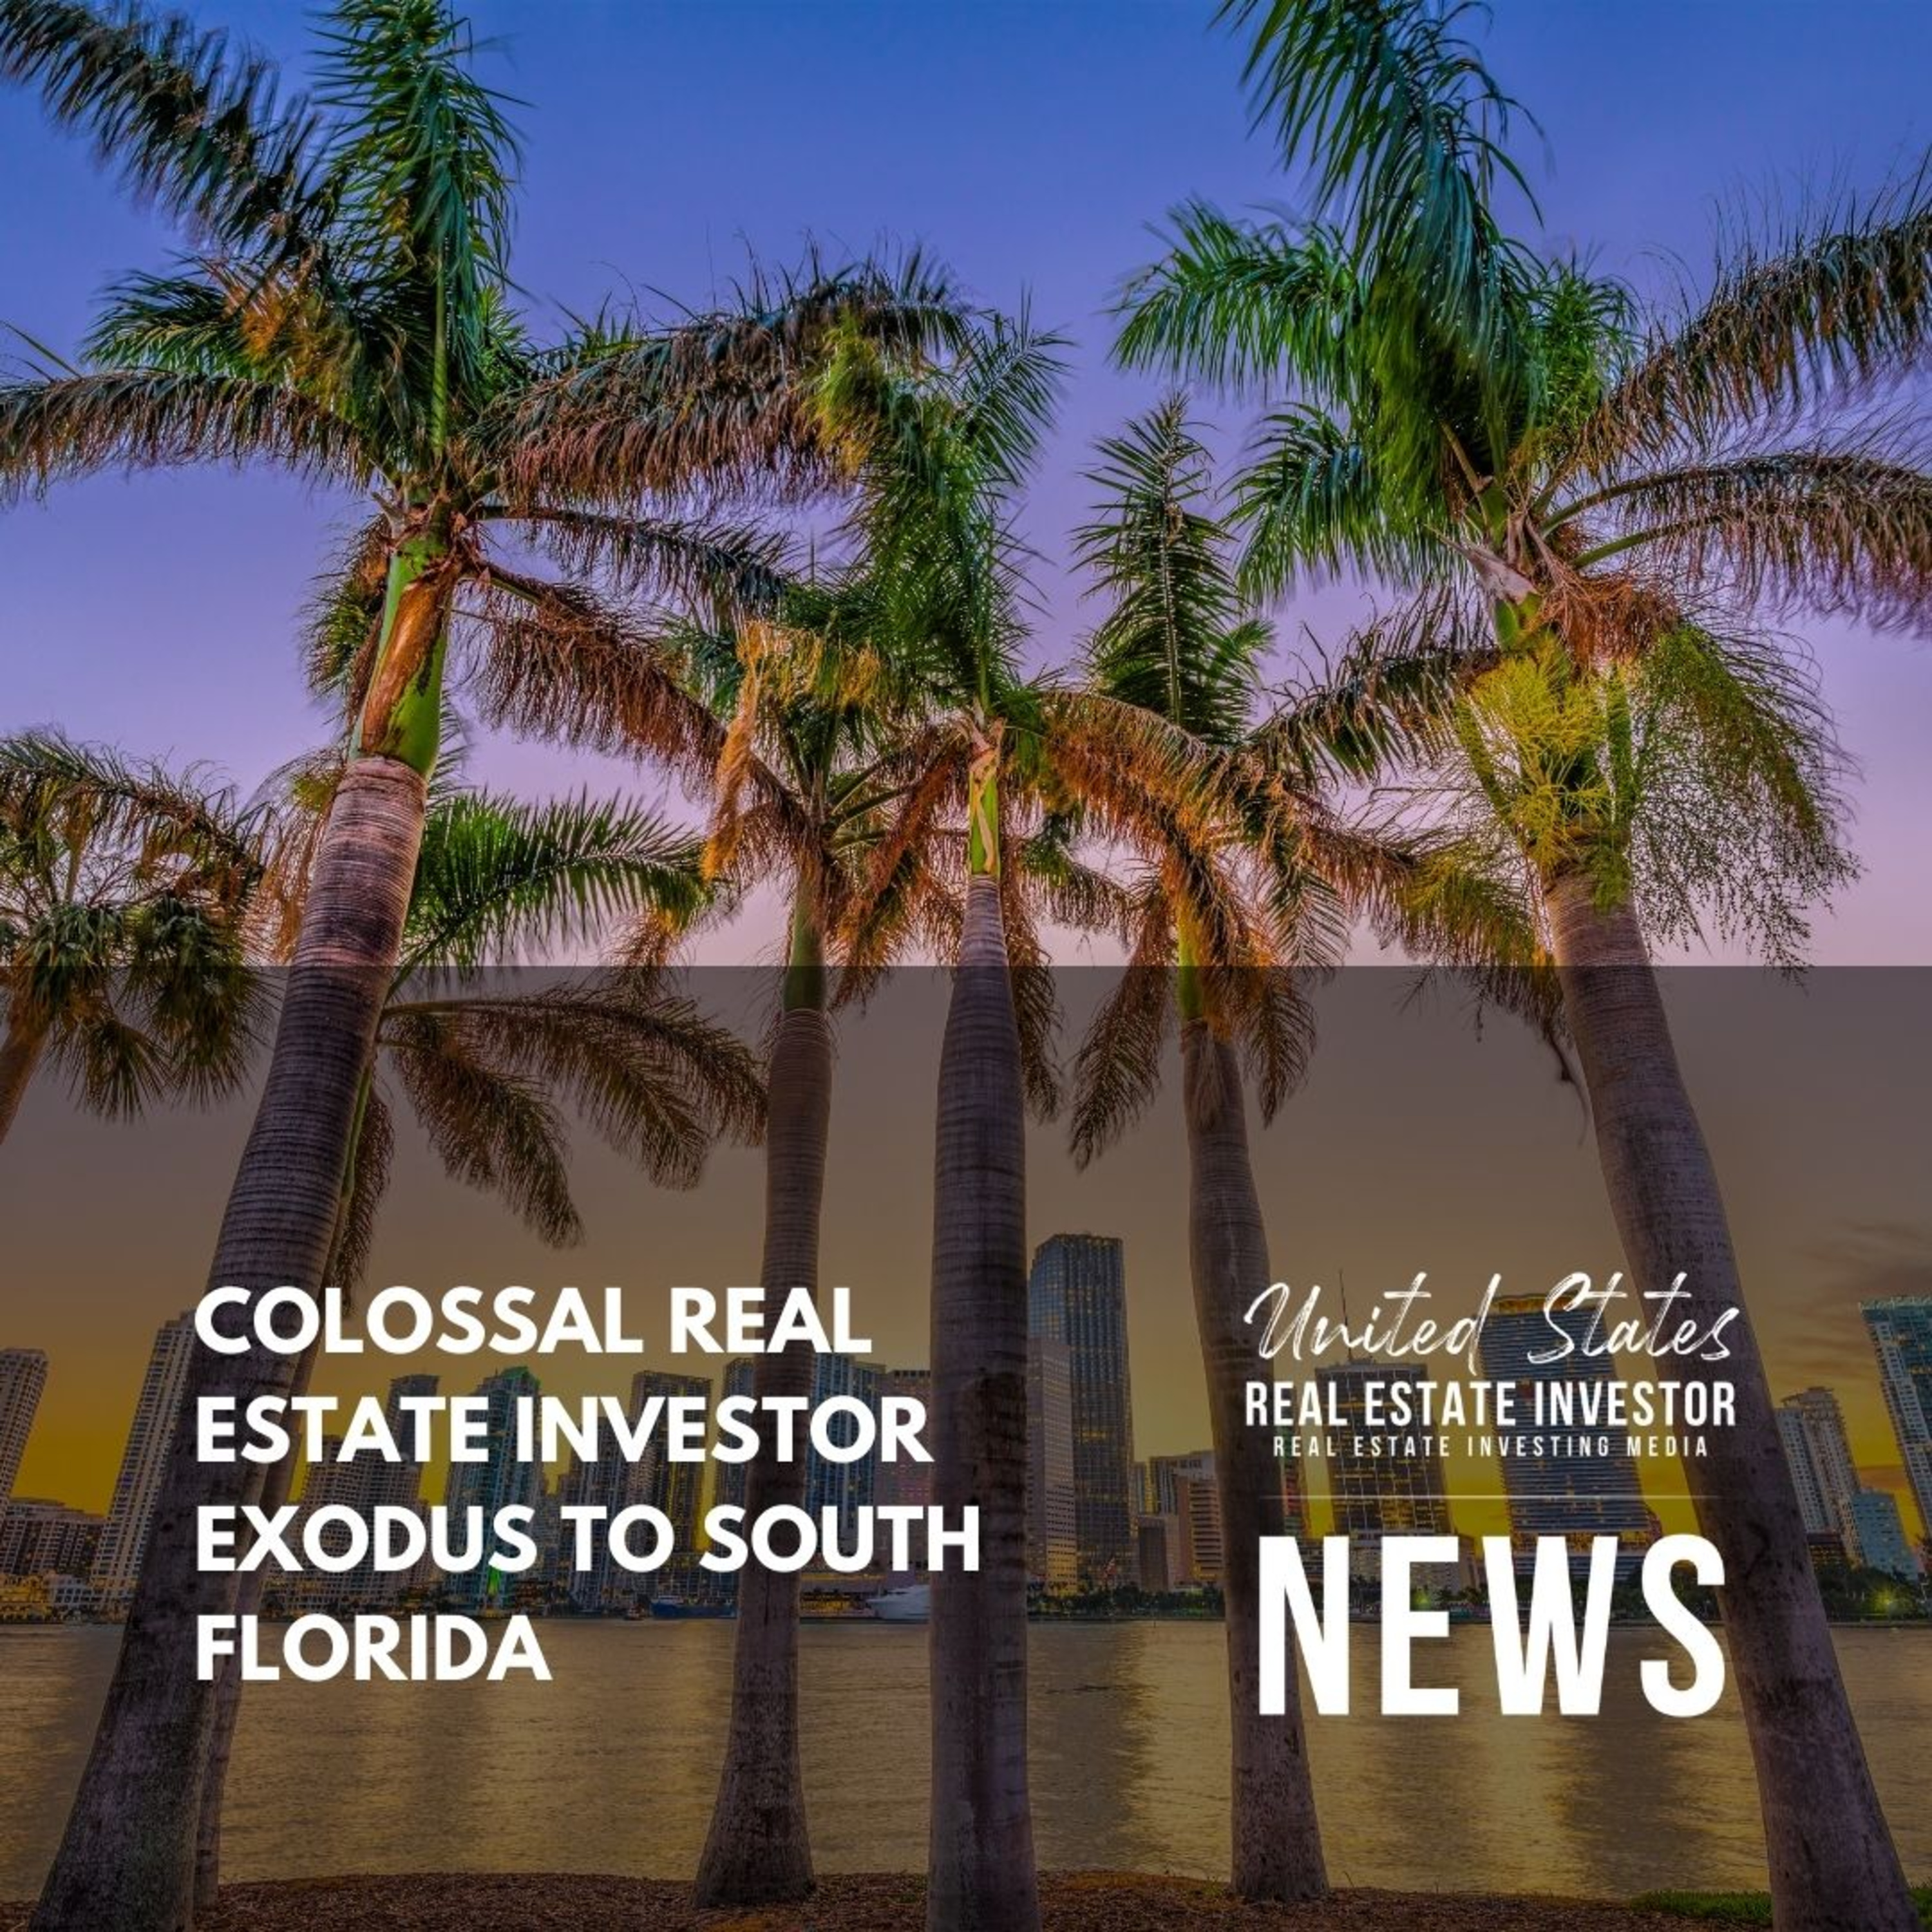 Colossal Real Estate Investor Exodus To South Florida